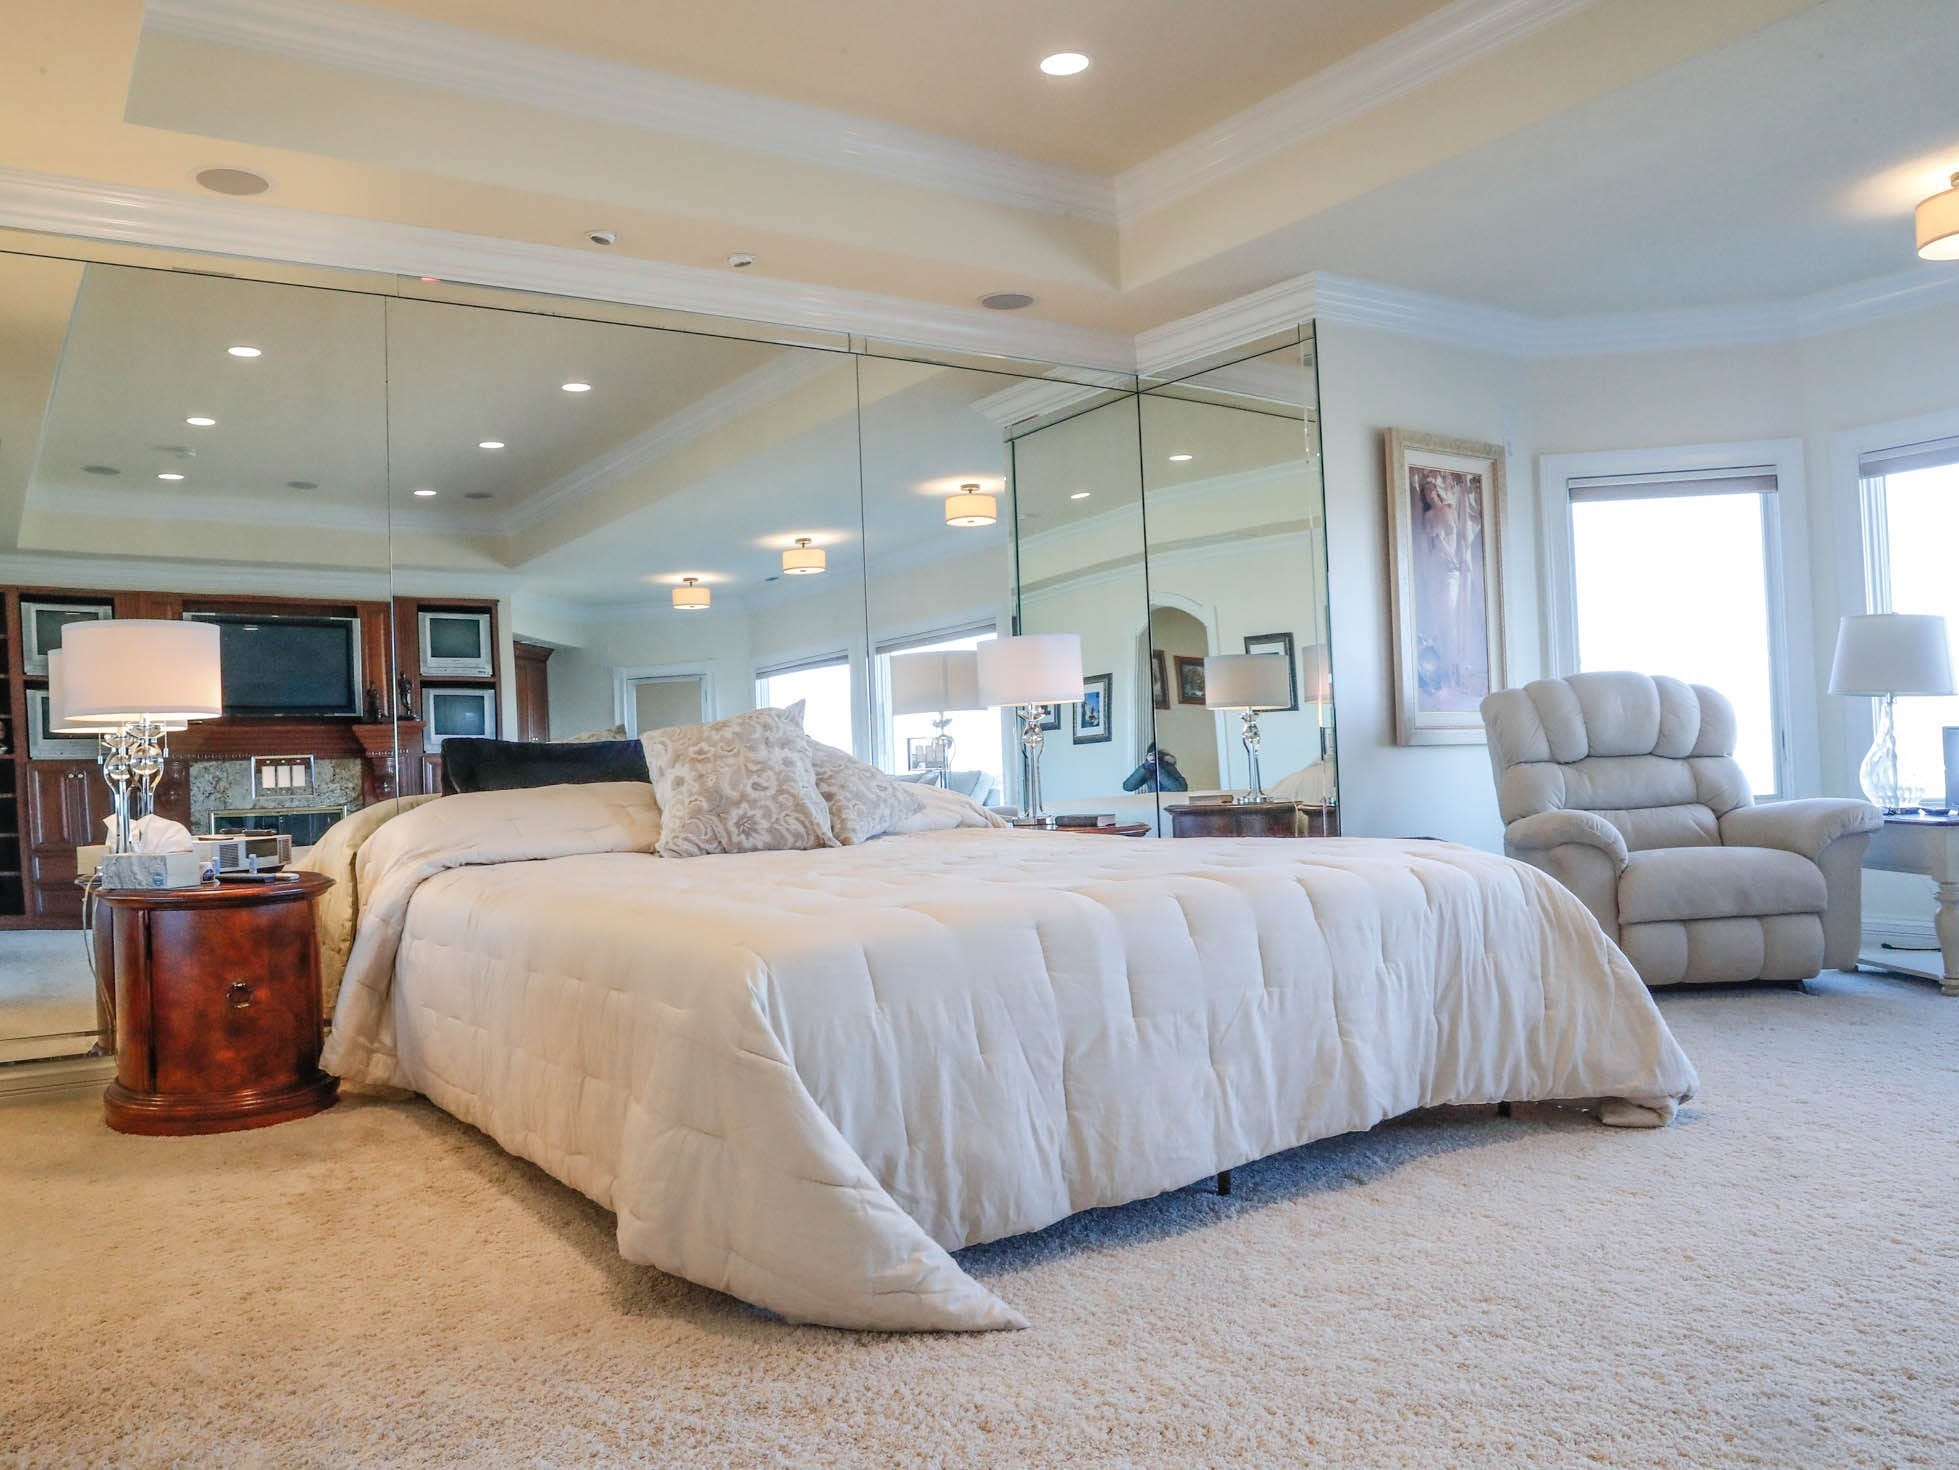 A second-floor master suite, one of two in the home, features mirrored walls and a seating area at a Greenwood home up for sale at 1216 Stone Ridge Court, Greenwood, Ind. on Wednesday, Jan. 30, 2019. The home features 8,234 square feet, four bedrooms, two master suites, a 10 car garage, and an exercise room.